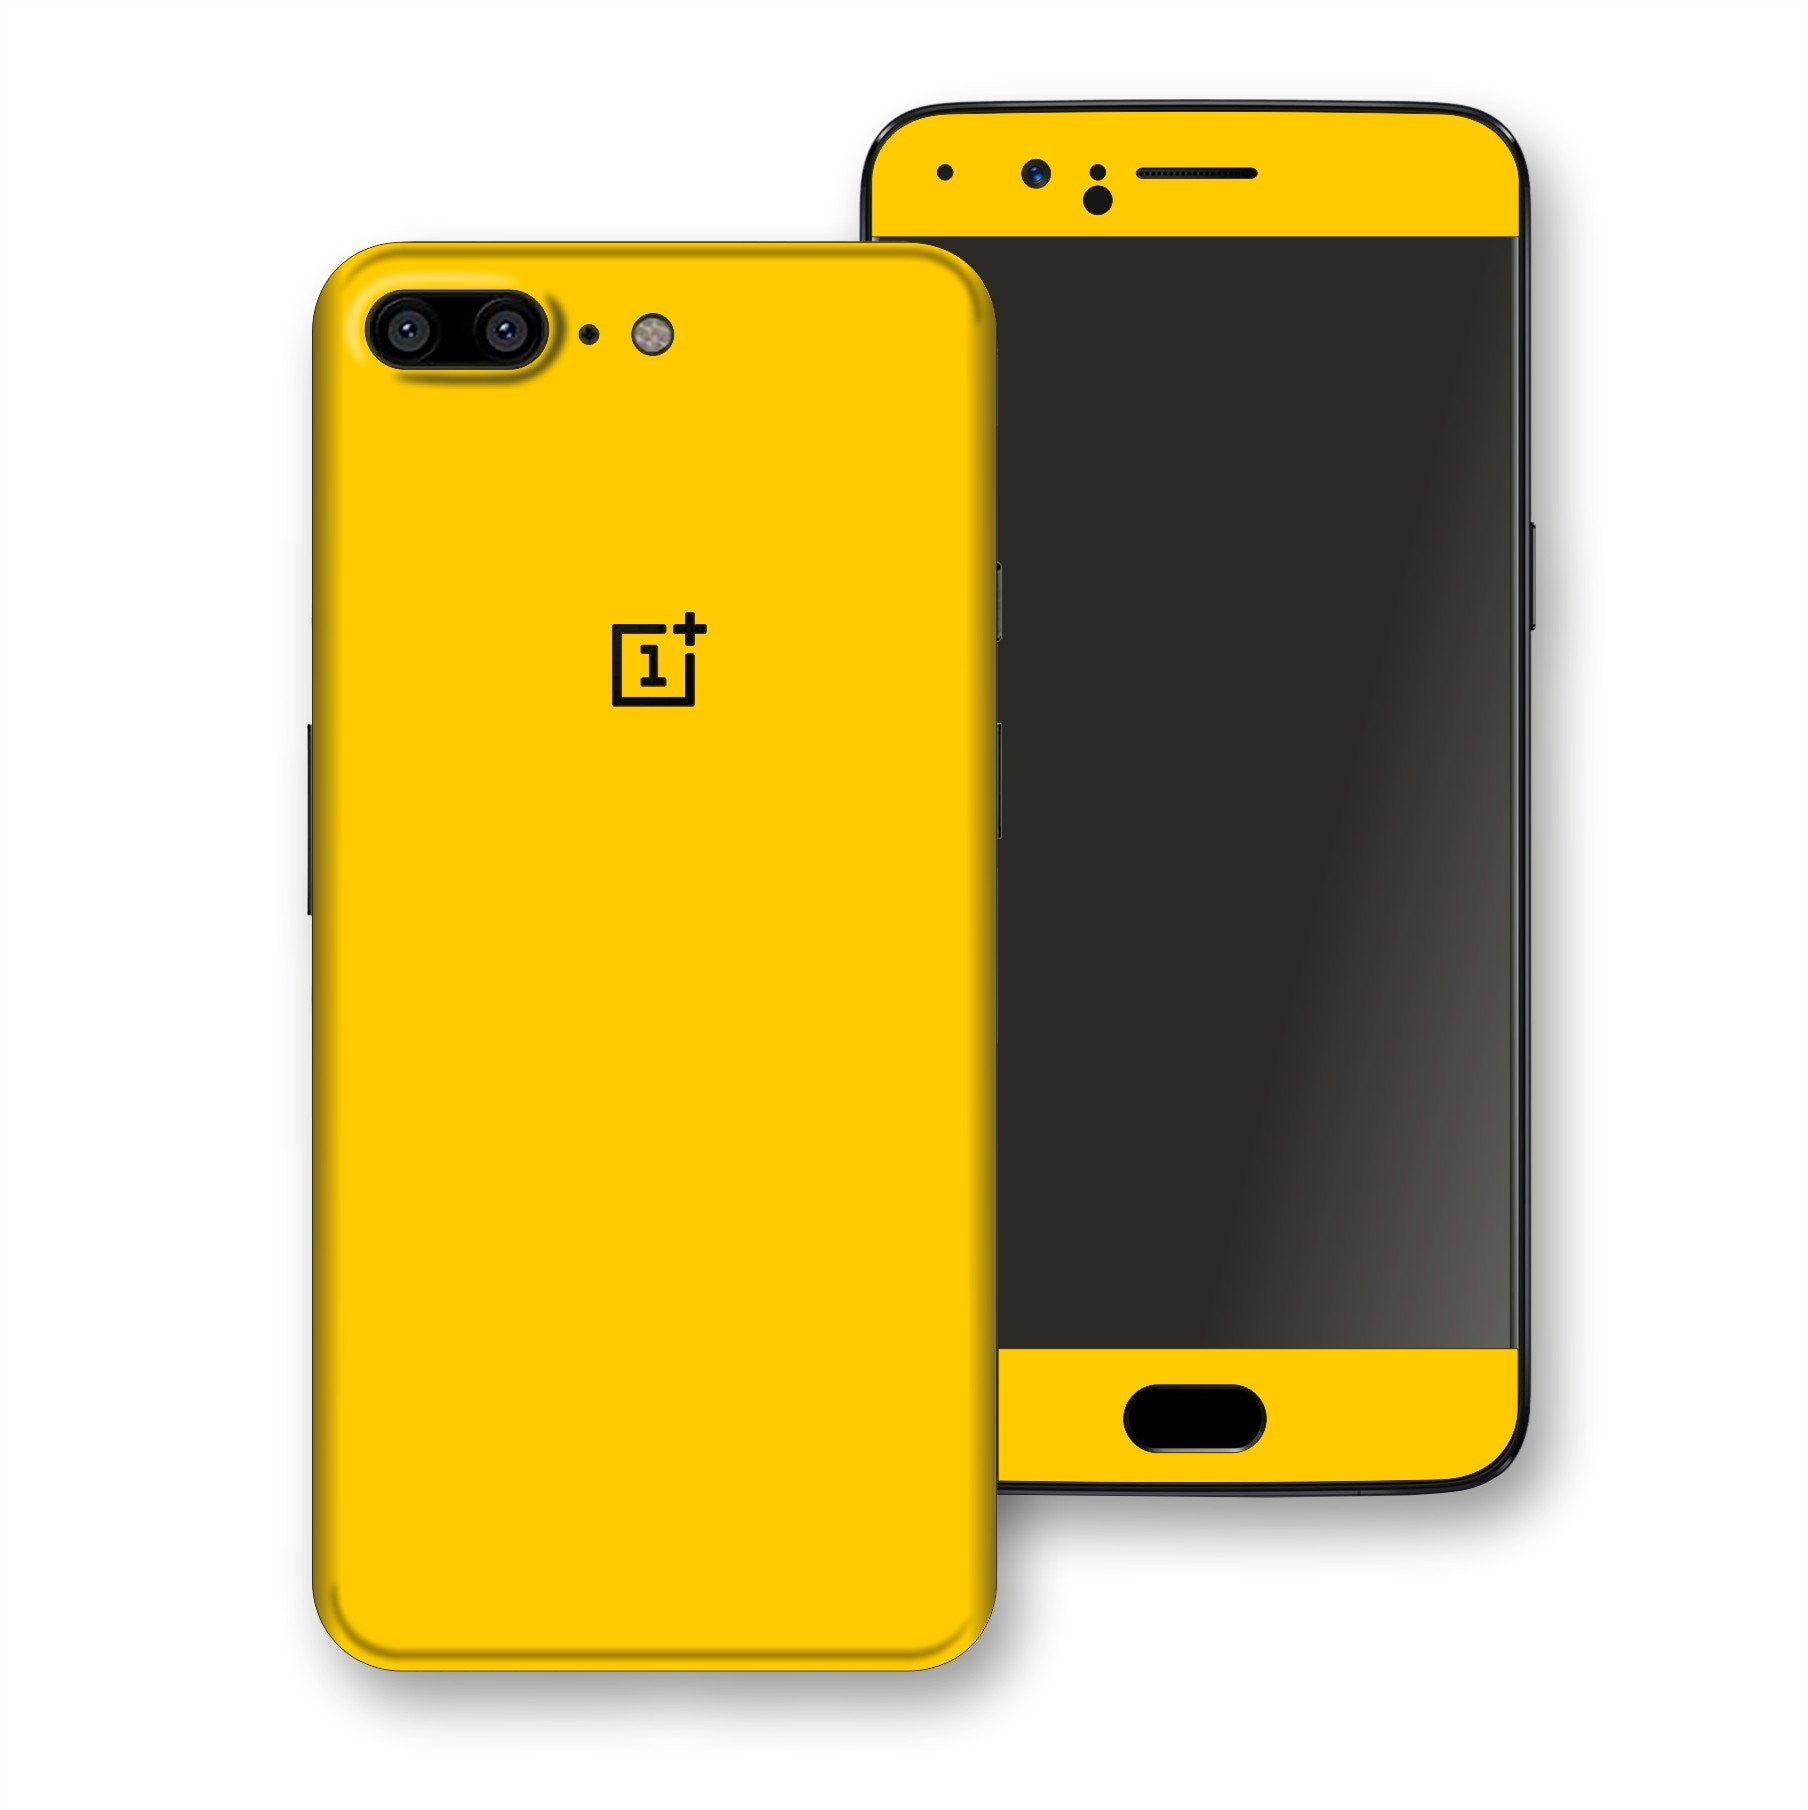 OnePlus 5 Golden Yellow Glossy Gloss Finish Skin, Decal, Wrap, Protector, Cover by EasySkinz | EasySkinz.com